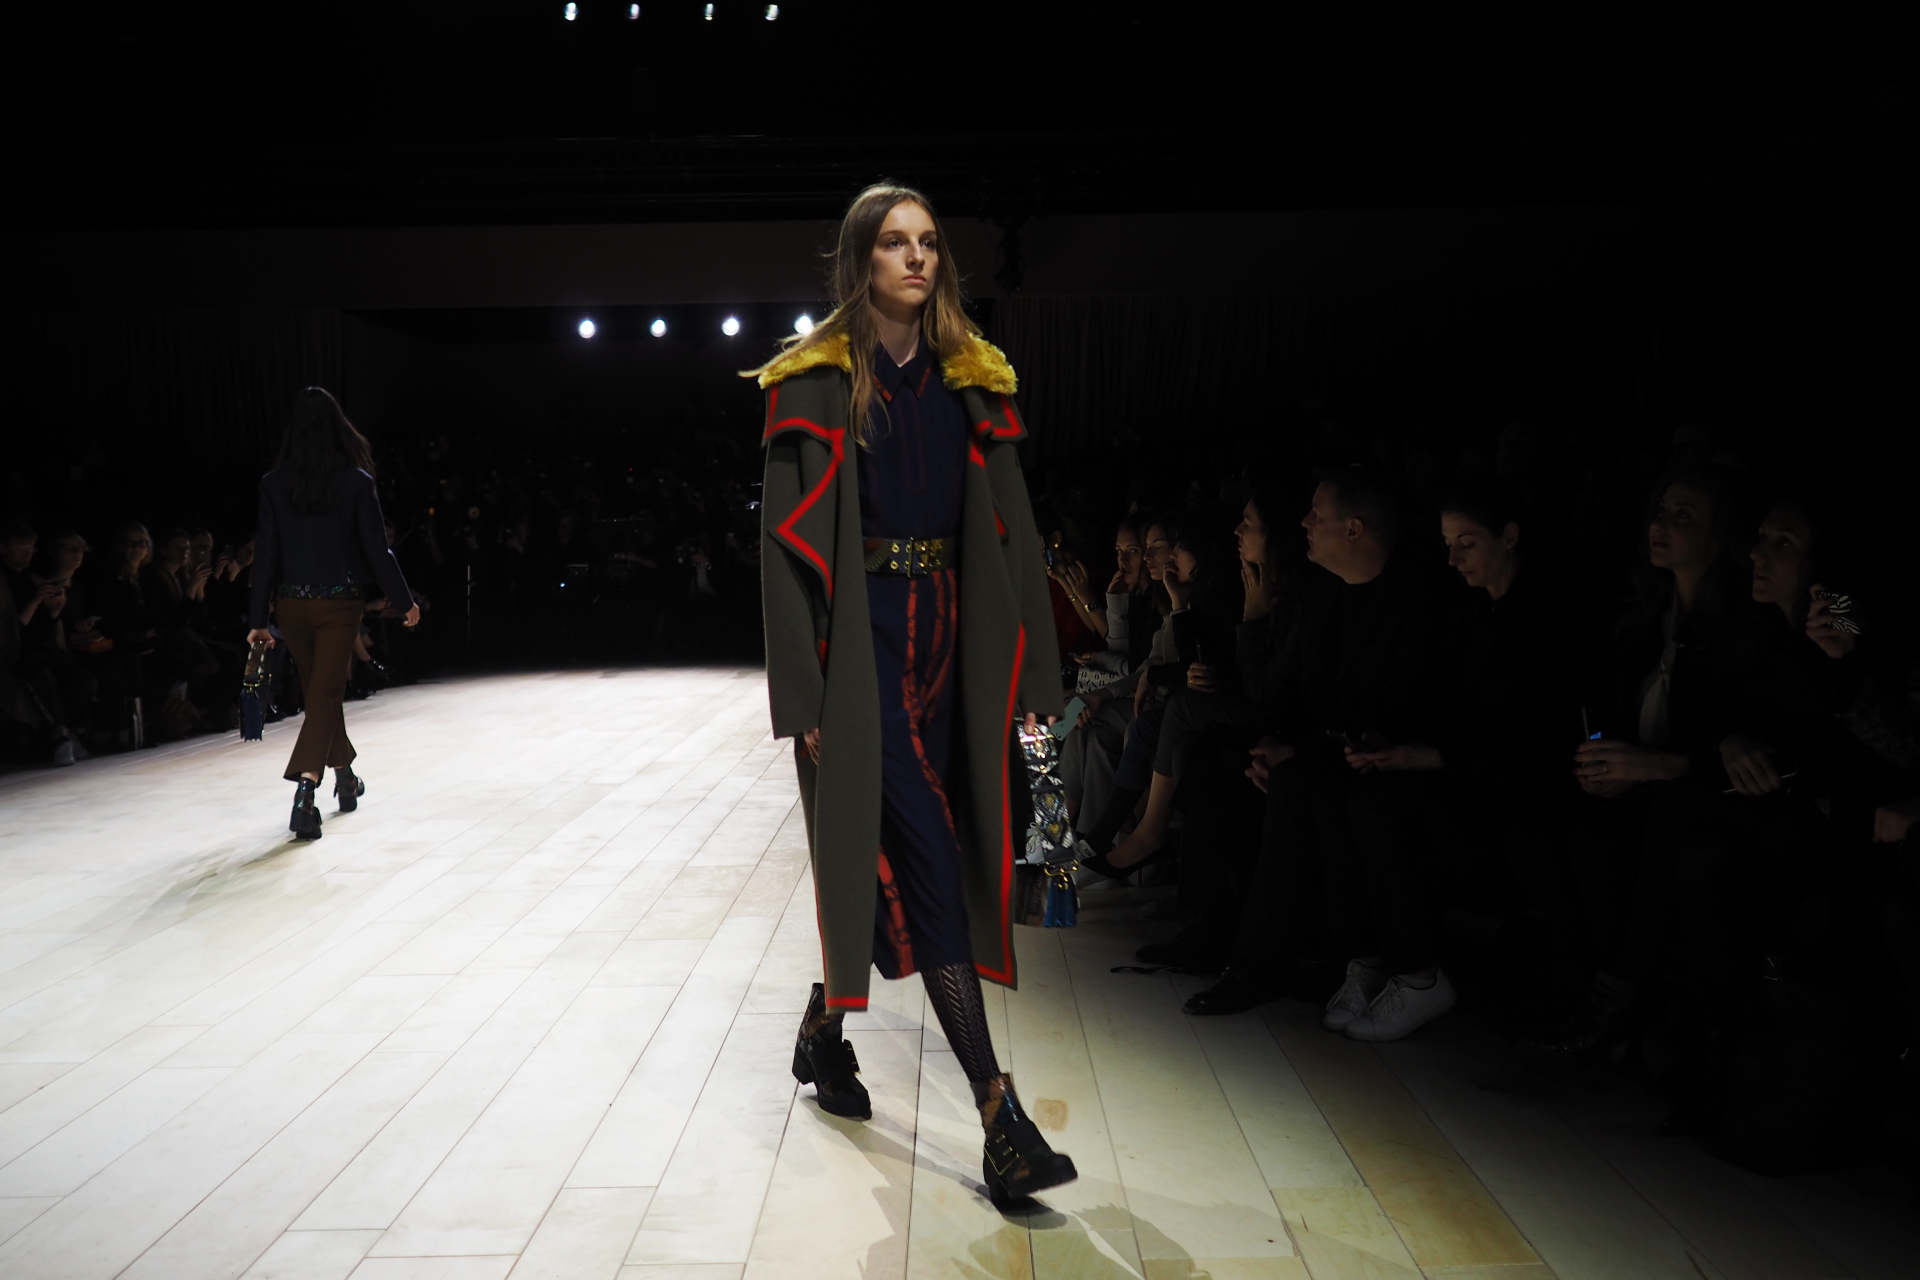 burberry london fashion week autumn winter 2016 a/w16 inthefrow